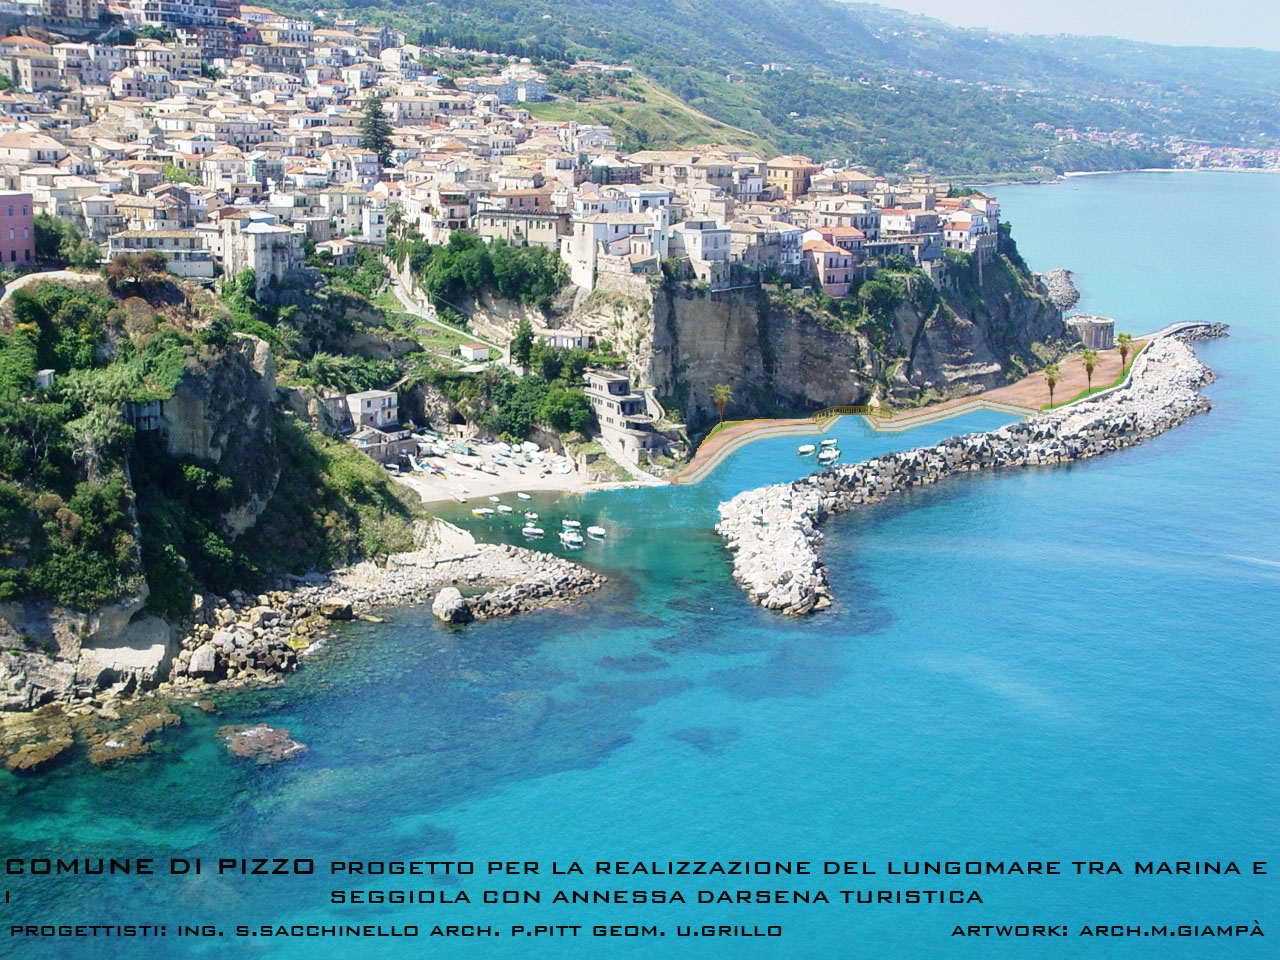 Pizzo Lungomare Project